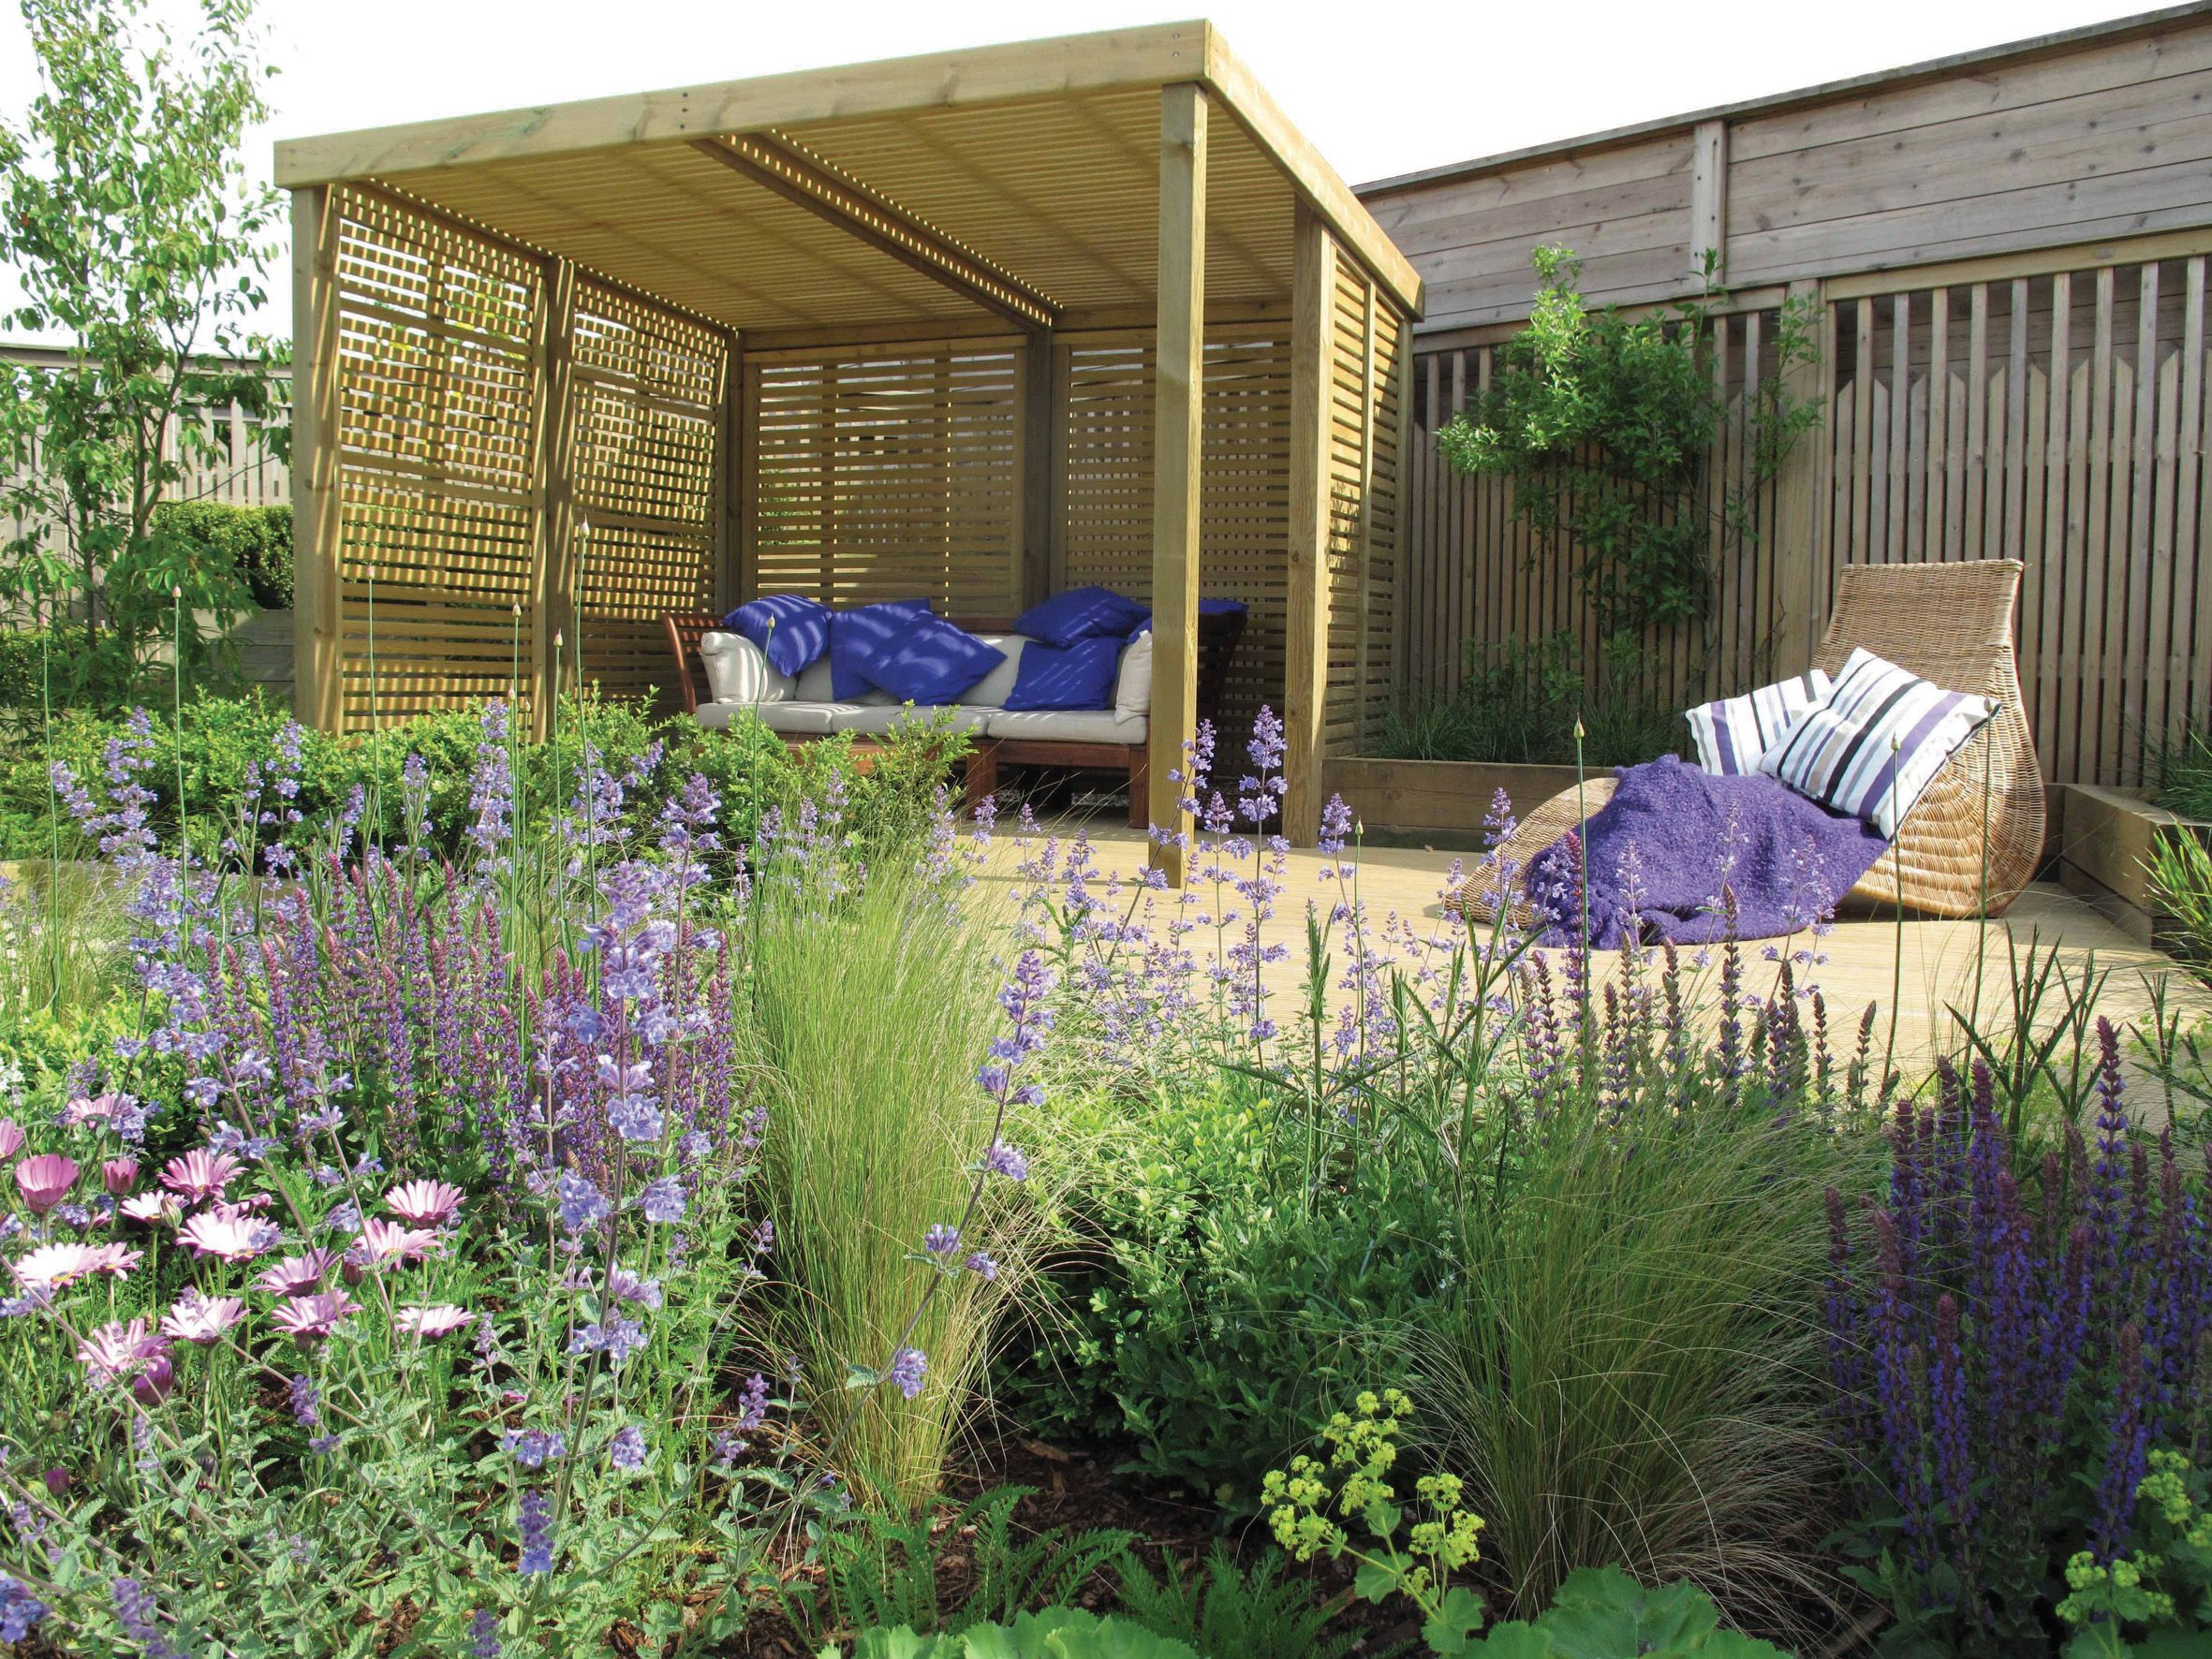 Awesome Retreat Garden Shelter Http://www.jacksons Fencing.co.uk